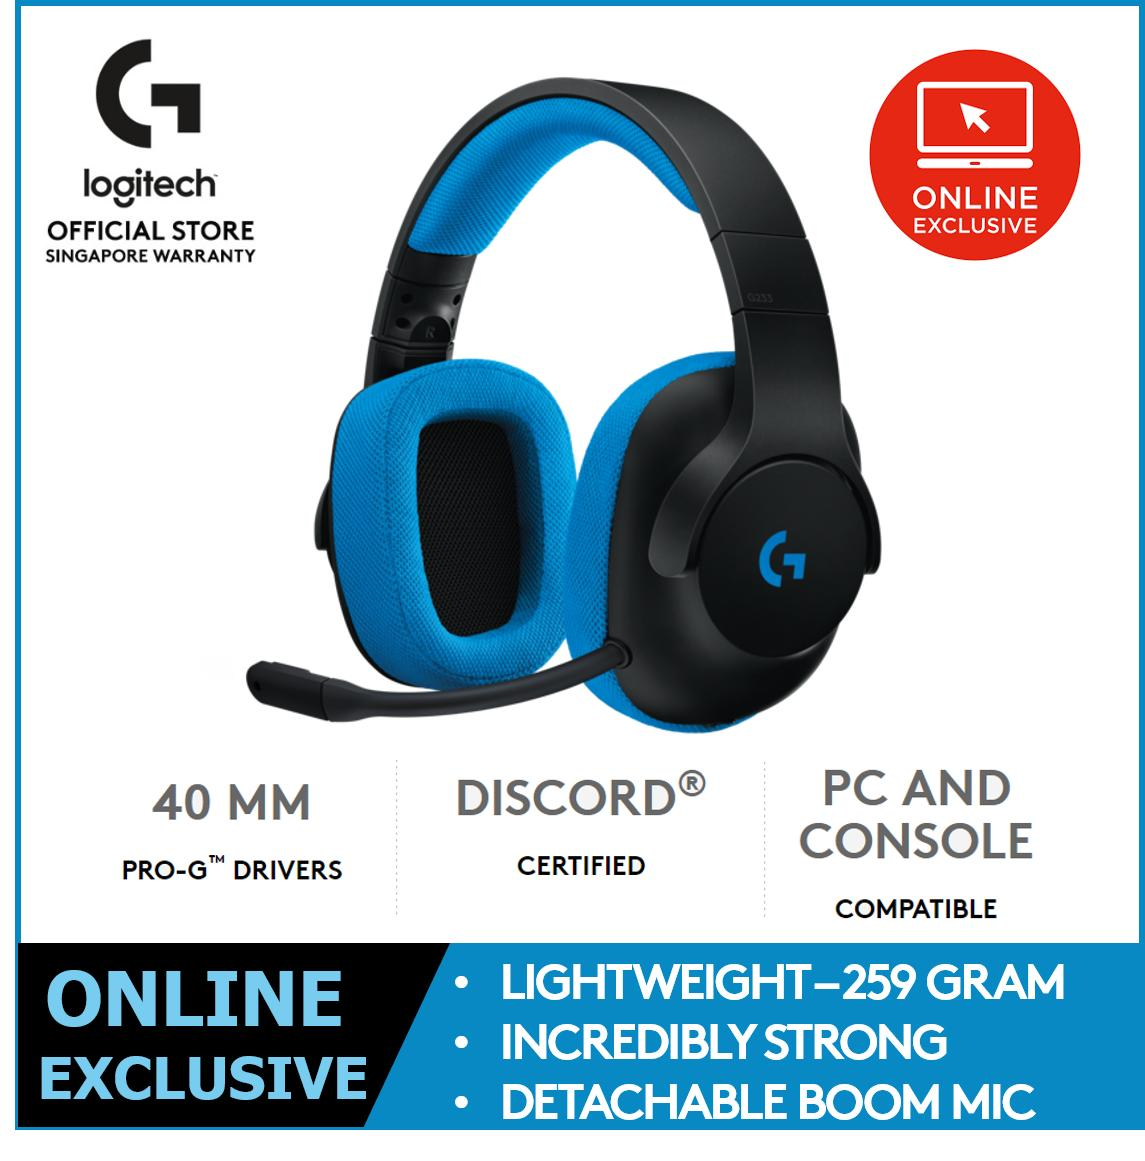 Logitech G233 Prodigy Gaming Headset for PC & Console (Online Exclusive)